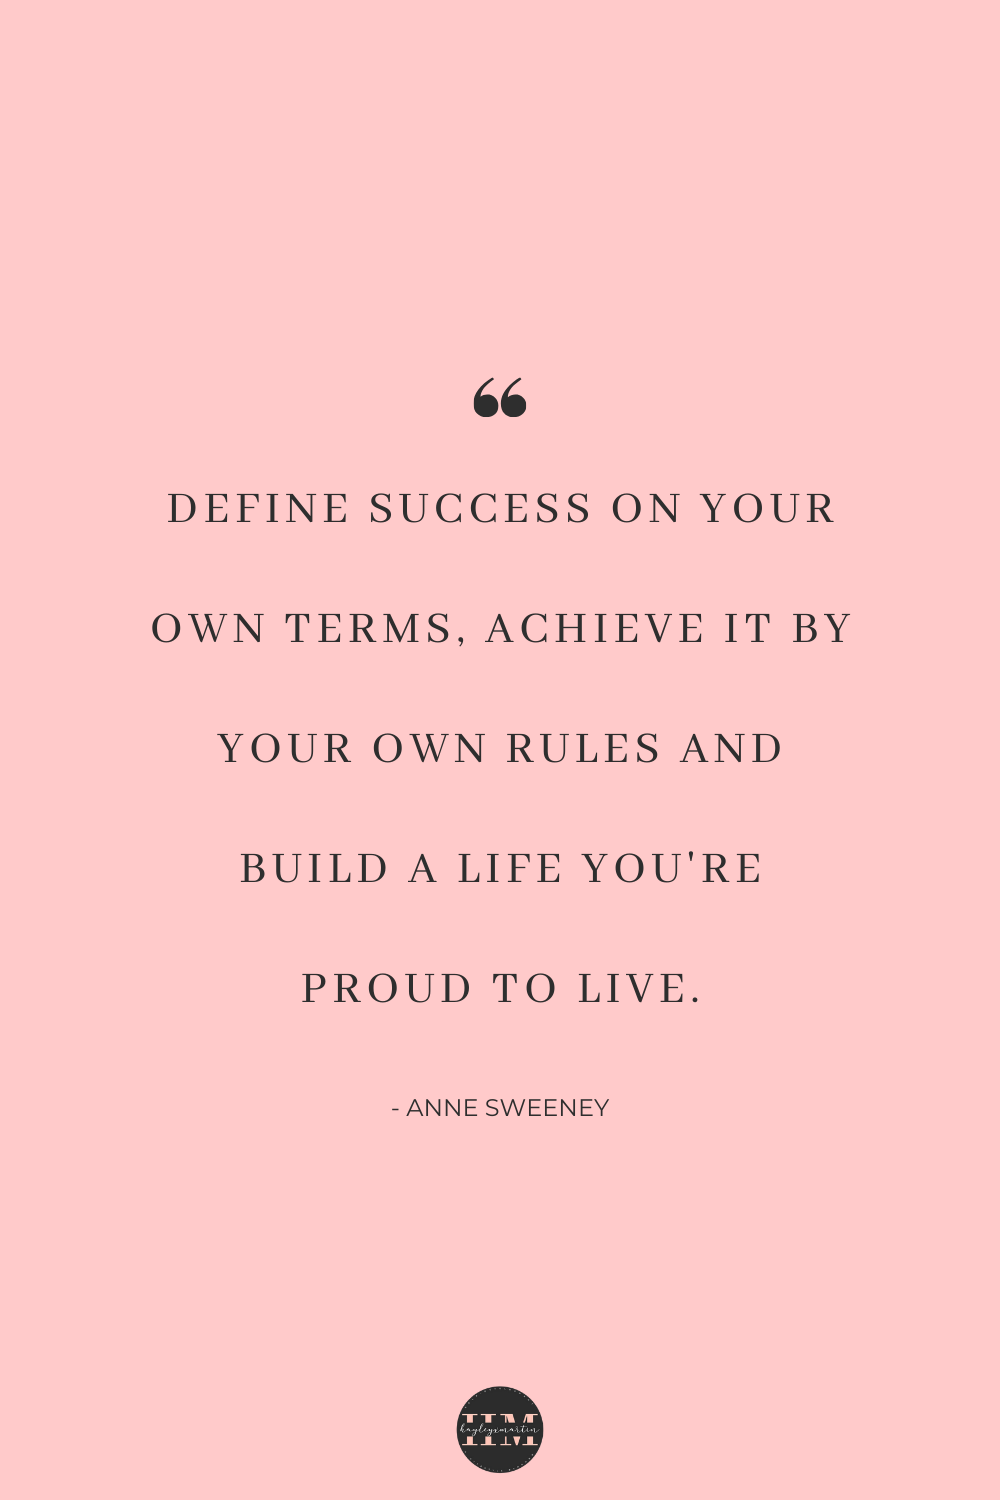 DEFINE SUCCESS ON YOUR OWN TERMS. ACHIEVE IT BY YOUR OWN RULES AND BUILD A LIFE YOU'RE PROUD TO LIVE